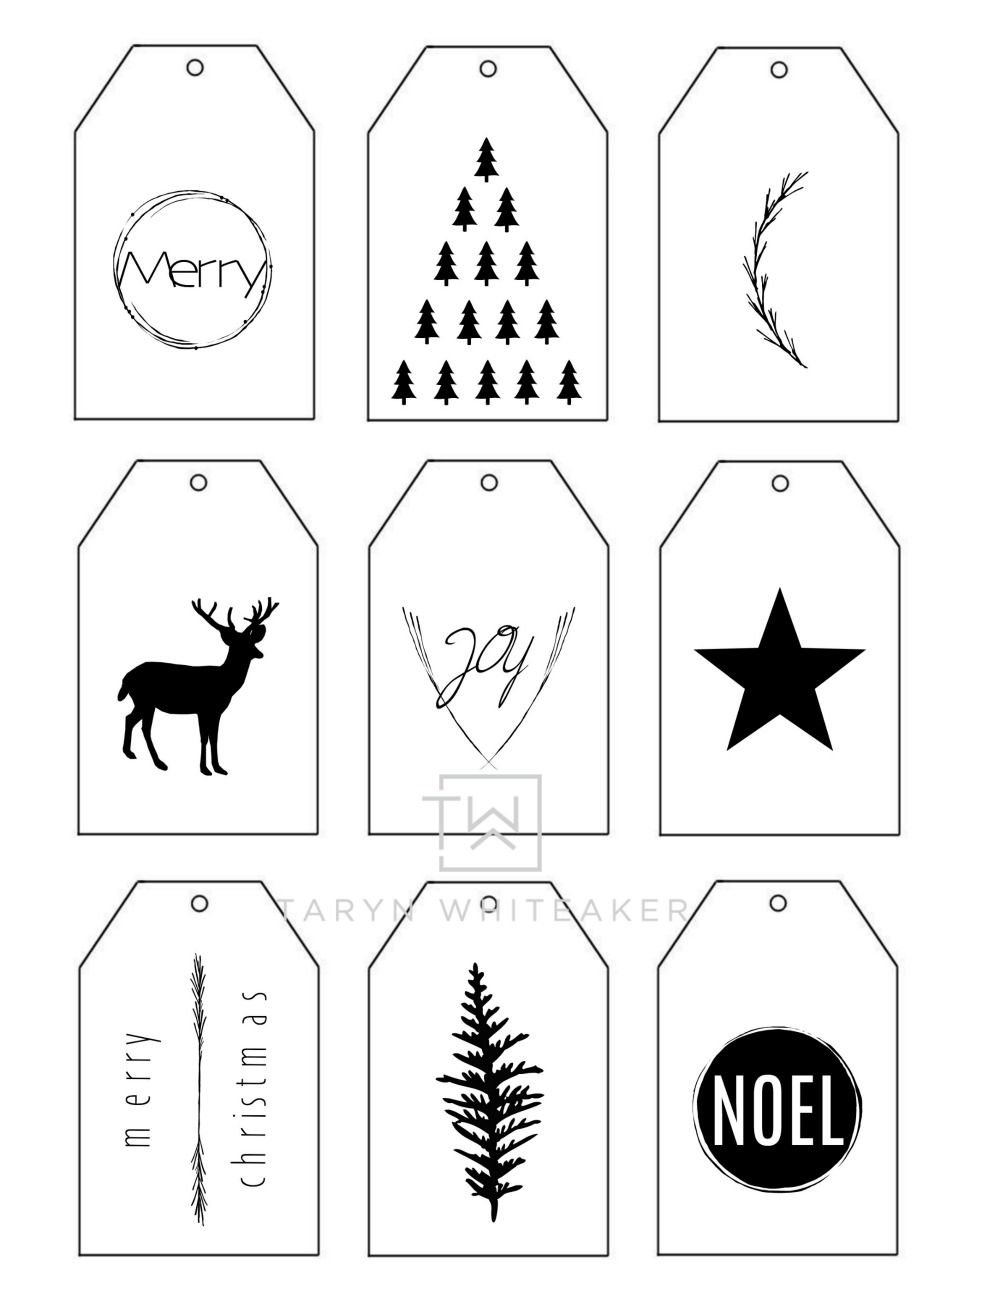 graphic regarding Printable Christmas Gift Tag named Printable Xmas Present Tags - Taryn Whiteaker